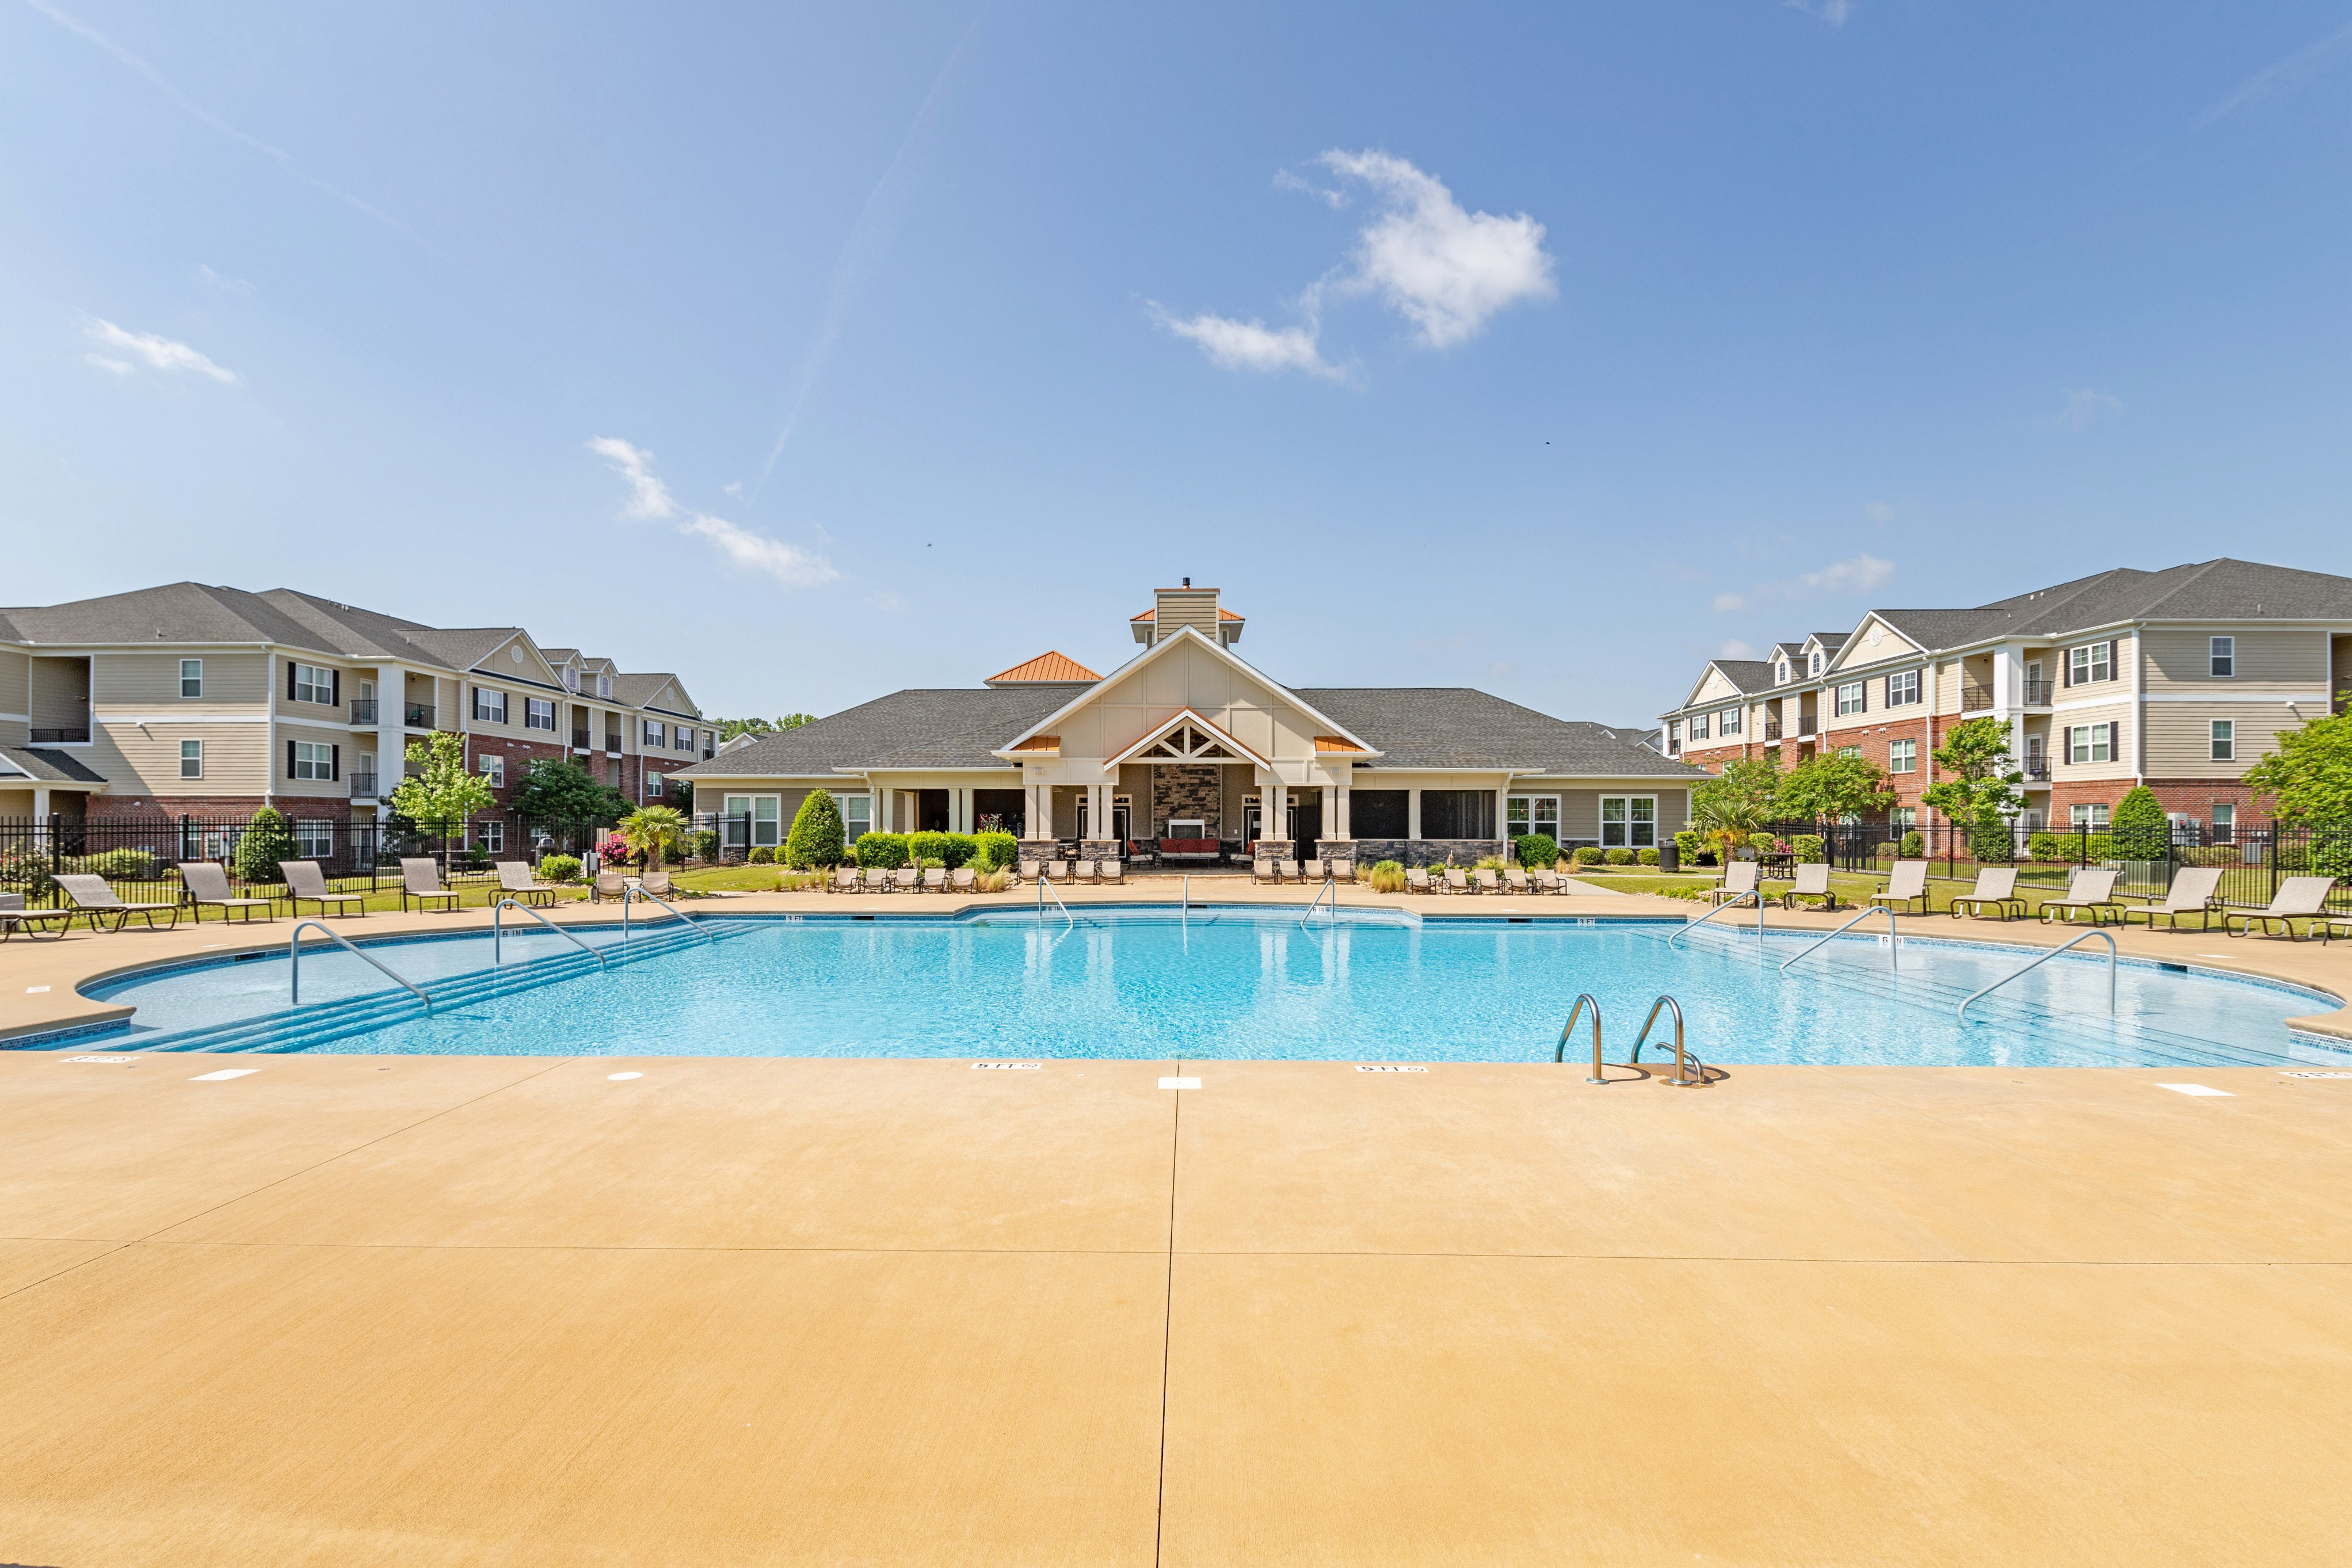 Apartments Near East Carolina The Heritage at Arlington Apartment Homes for East Carolina University Students in Greenville, NC